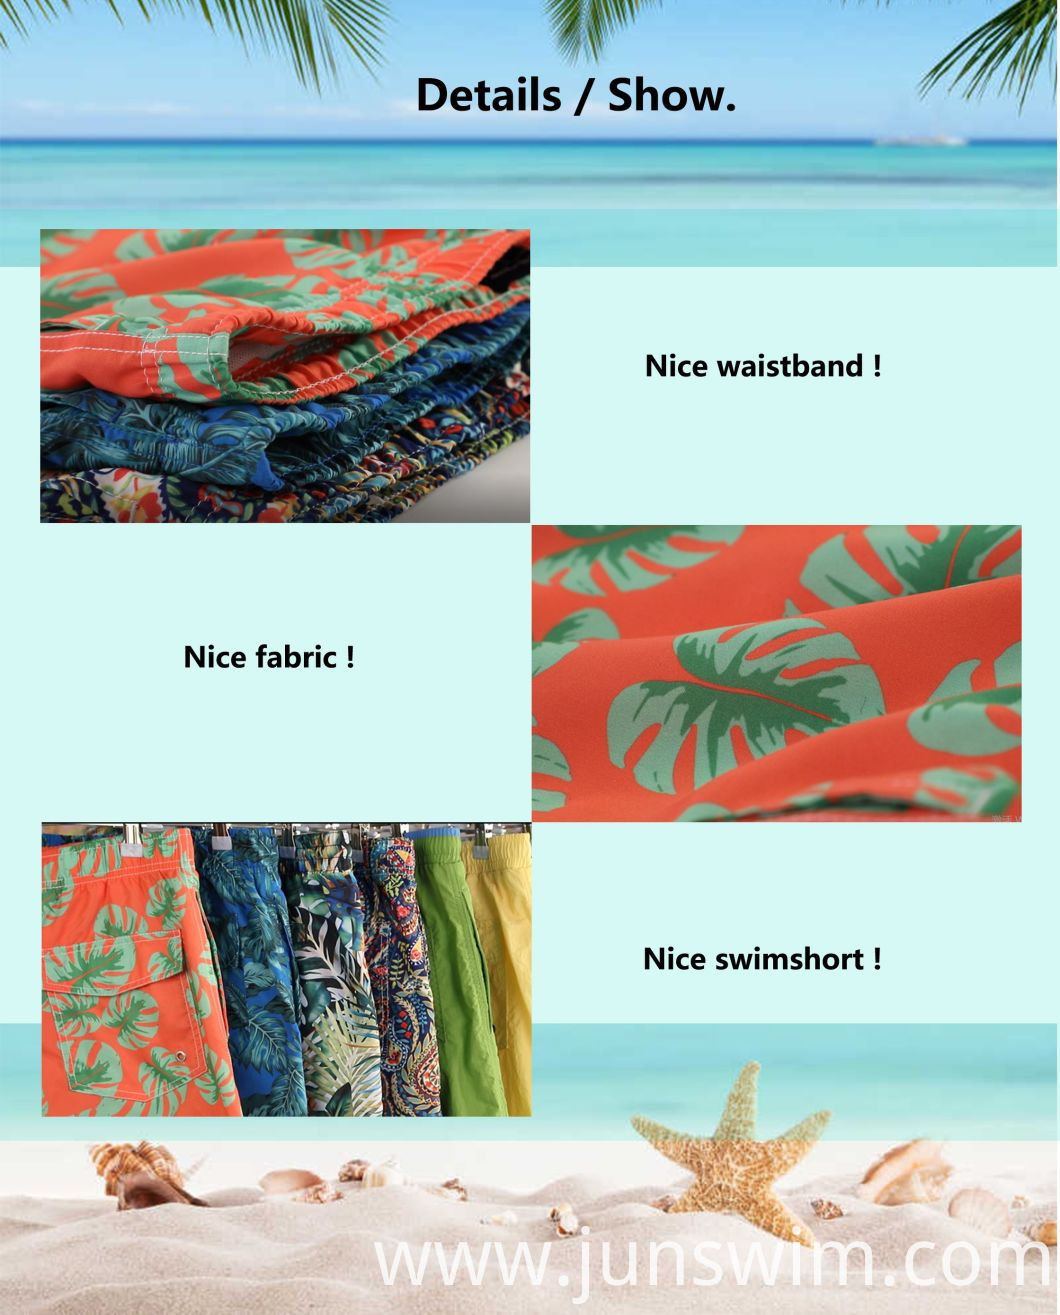 4way Stretch Fabric Digital Print with Stripes Match Well Fitted Waistband for Swim Quick Dry Water Repellent Man's Swimming Short Boardshort